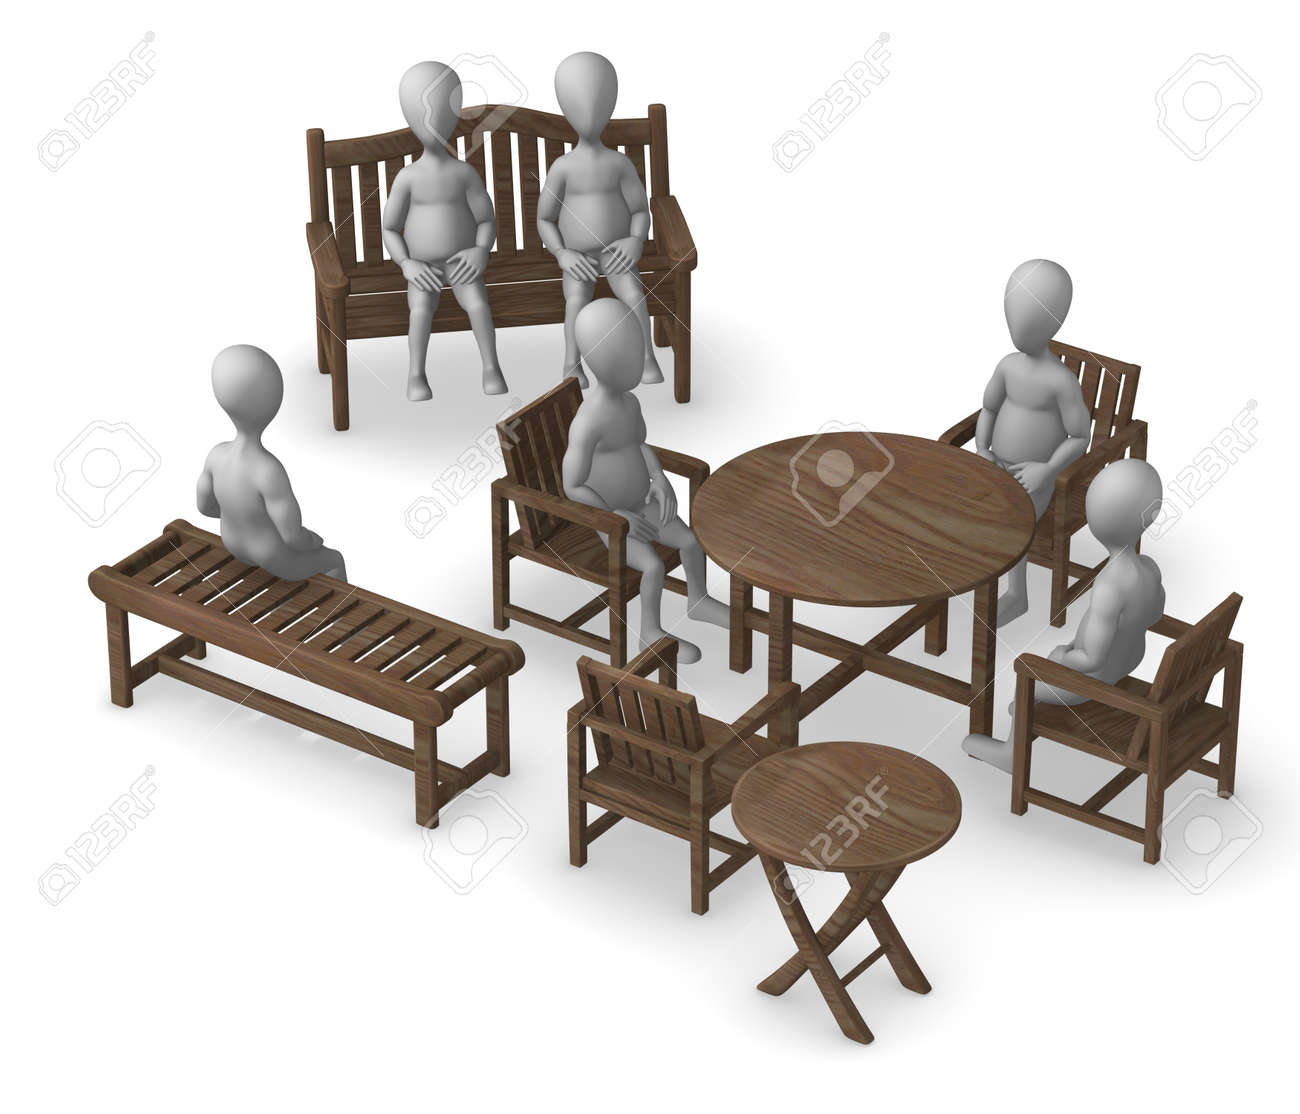 3d render of cartoon character with garden furniture stock photo 12985616